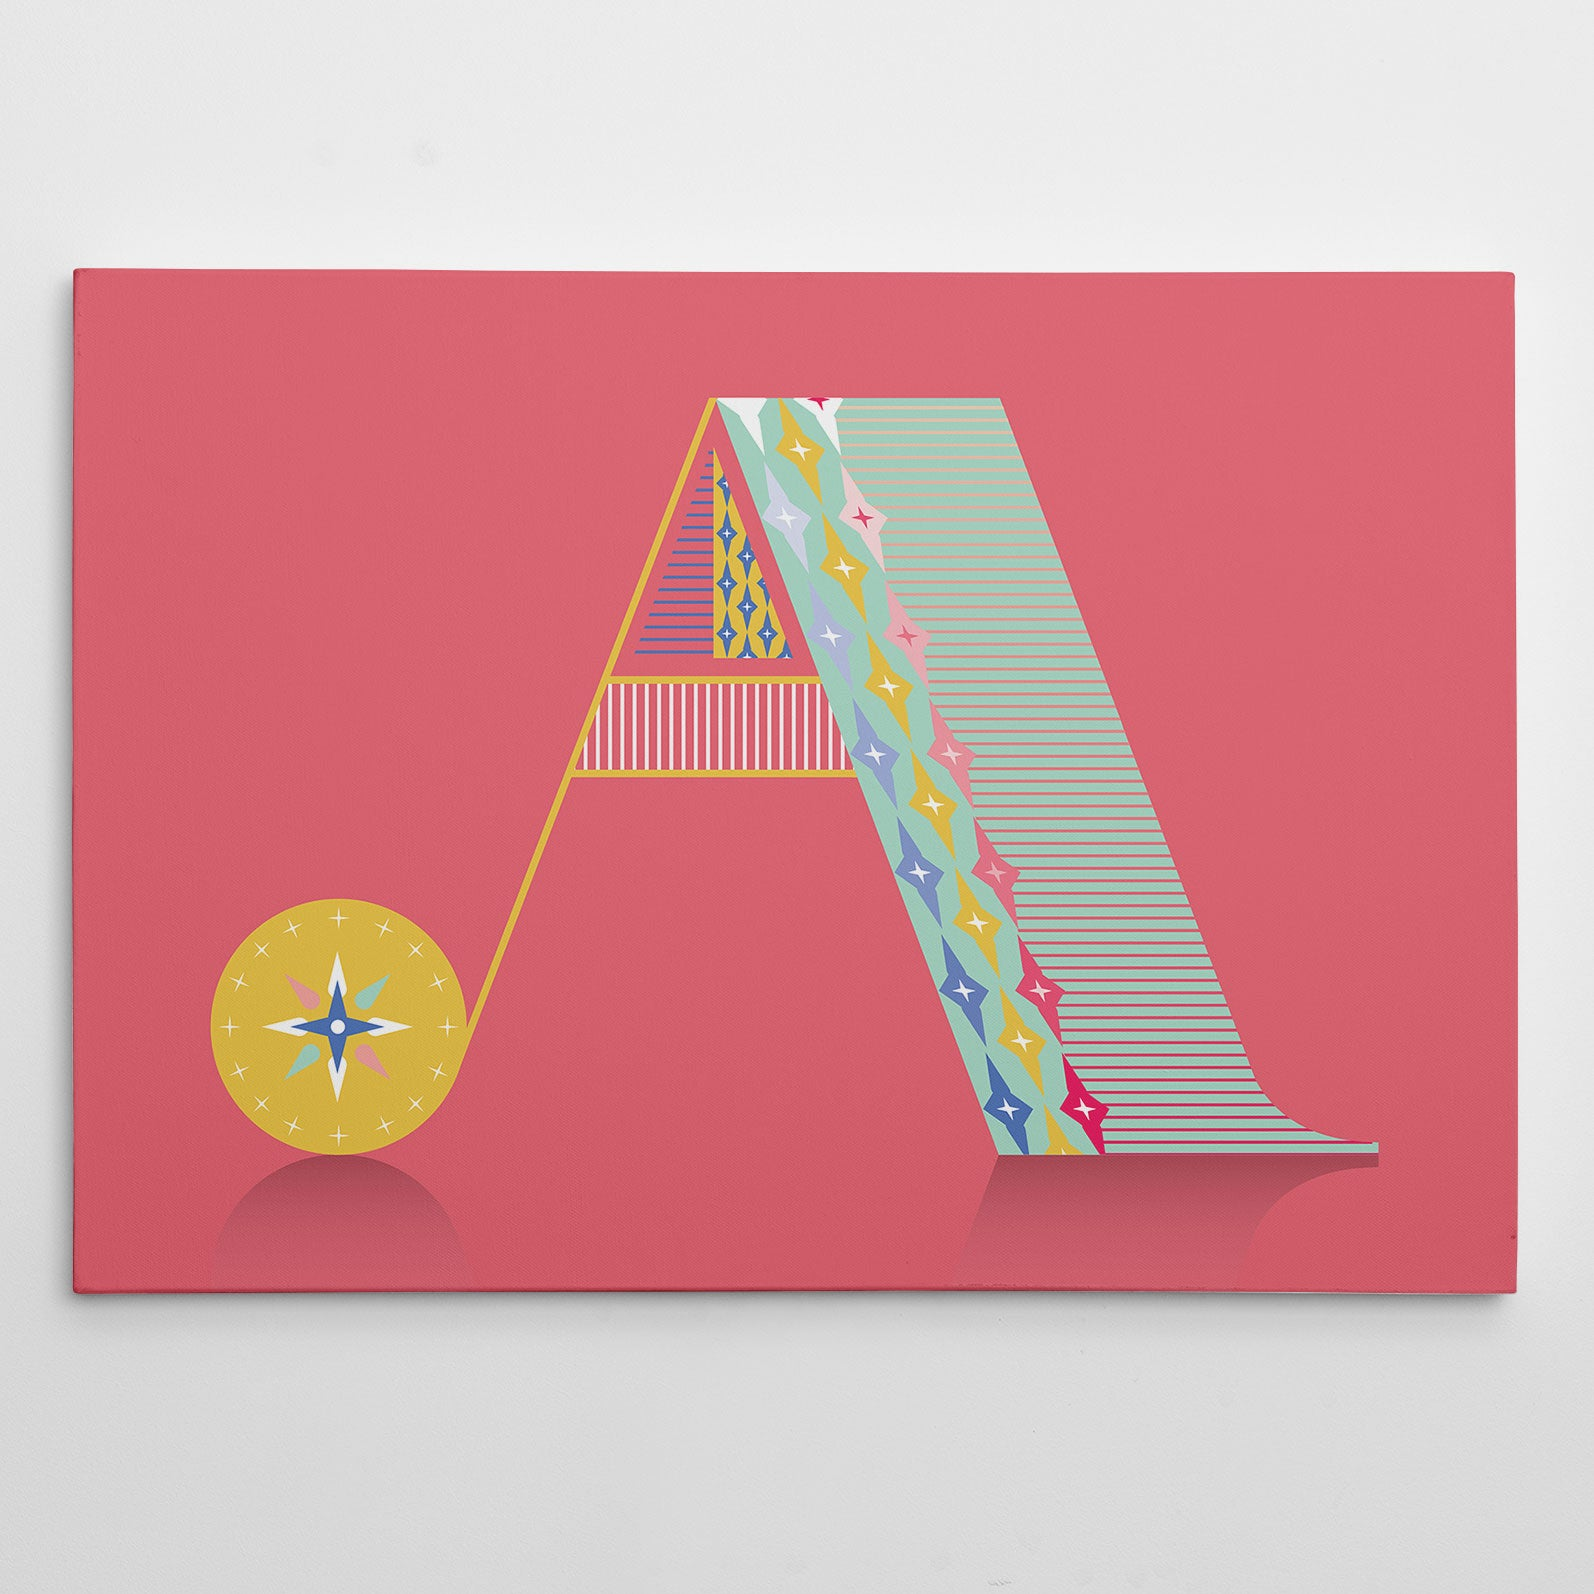 Canvas print with patterned letter A, on pink background.